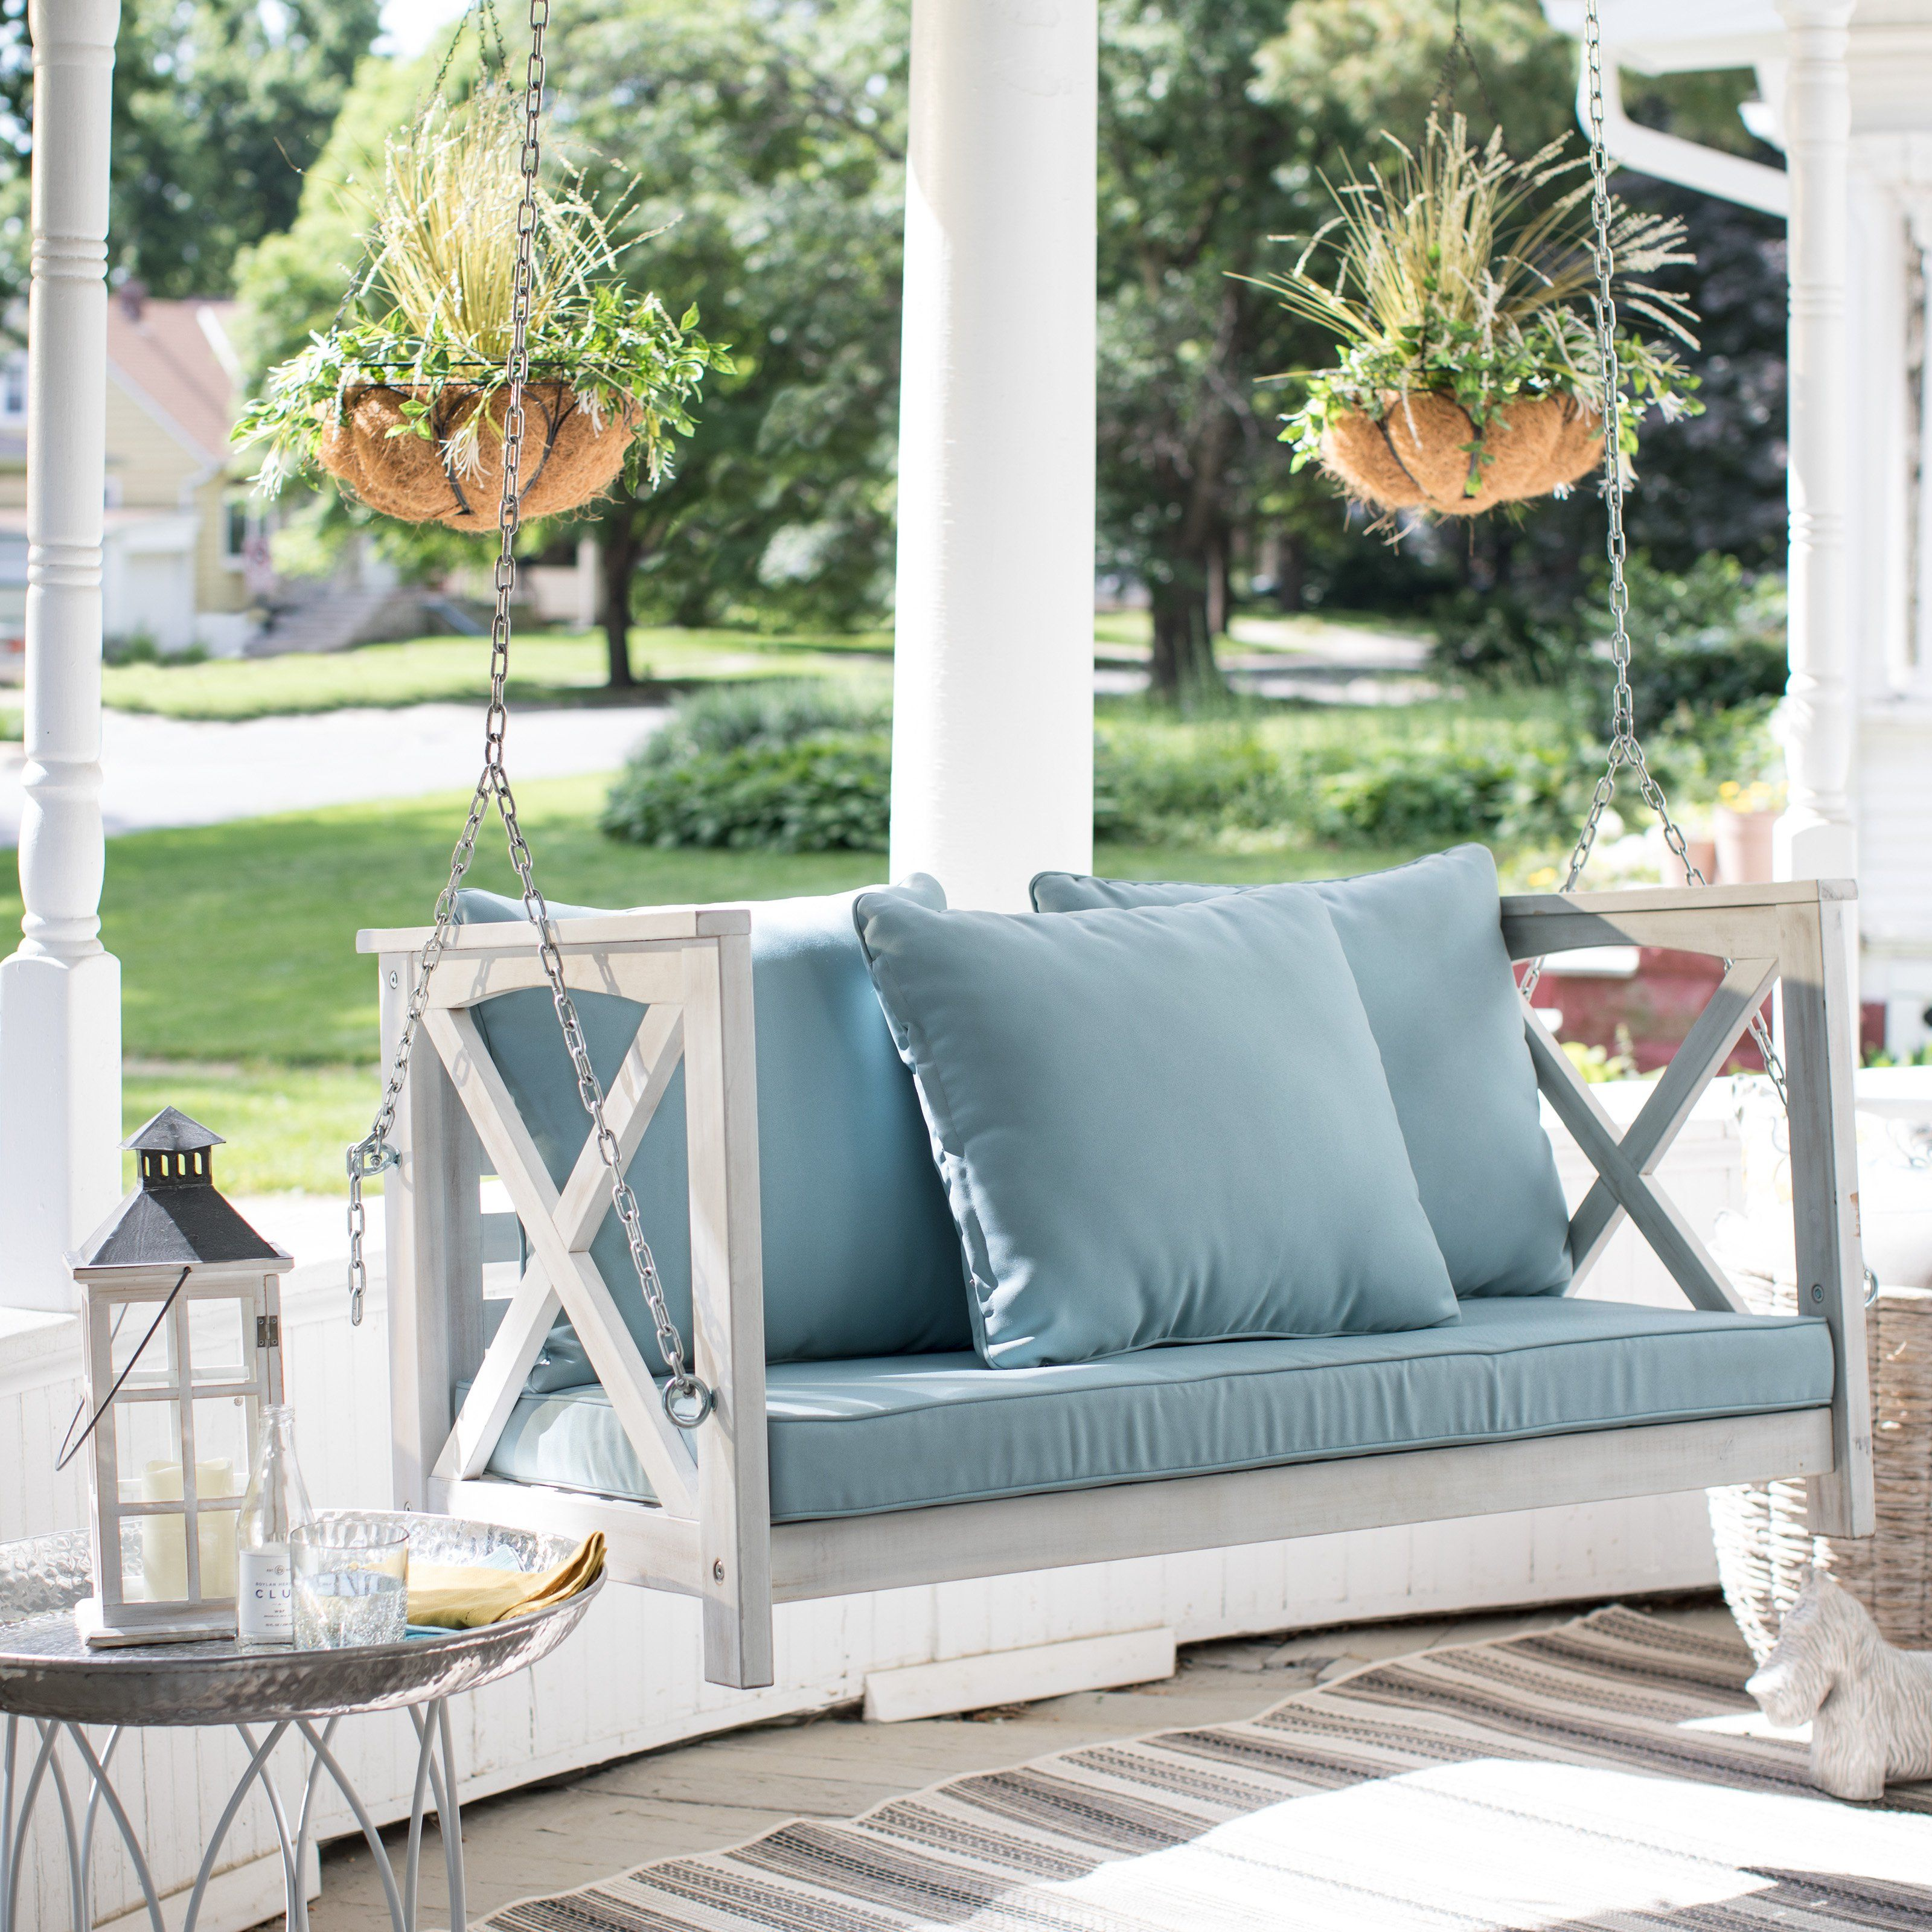 Coral coast delanie rose ft porch swing with cushion cushioned